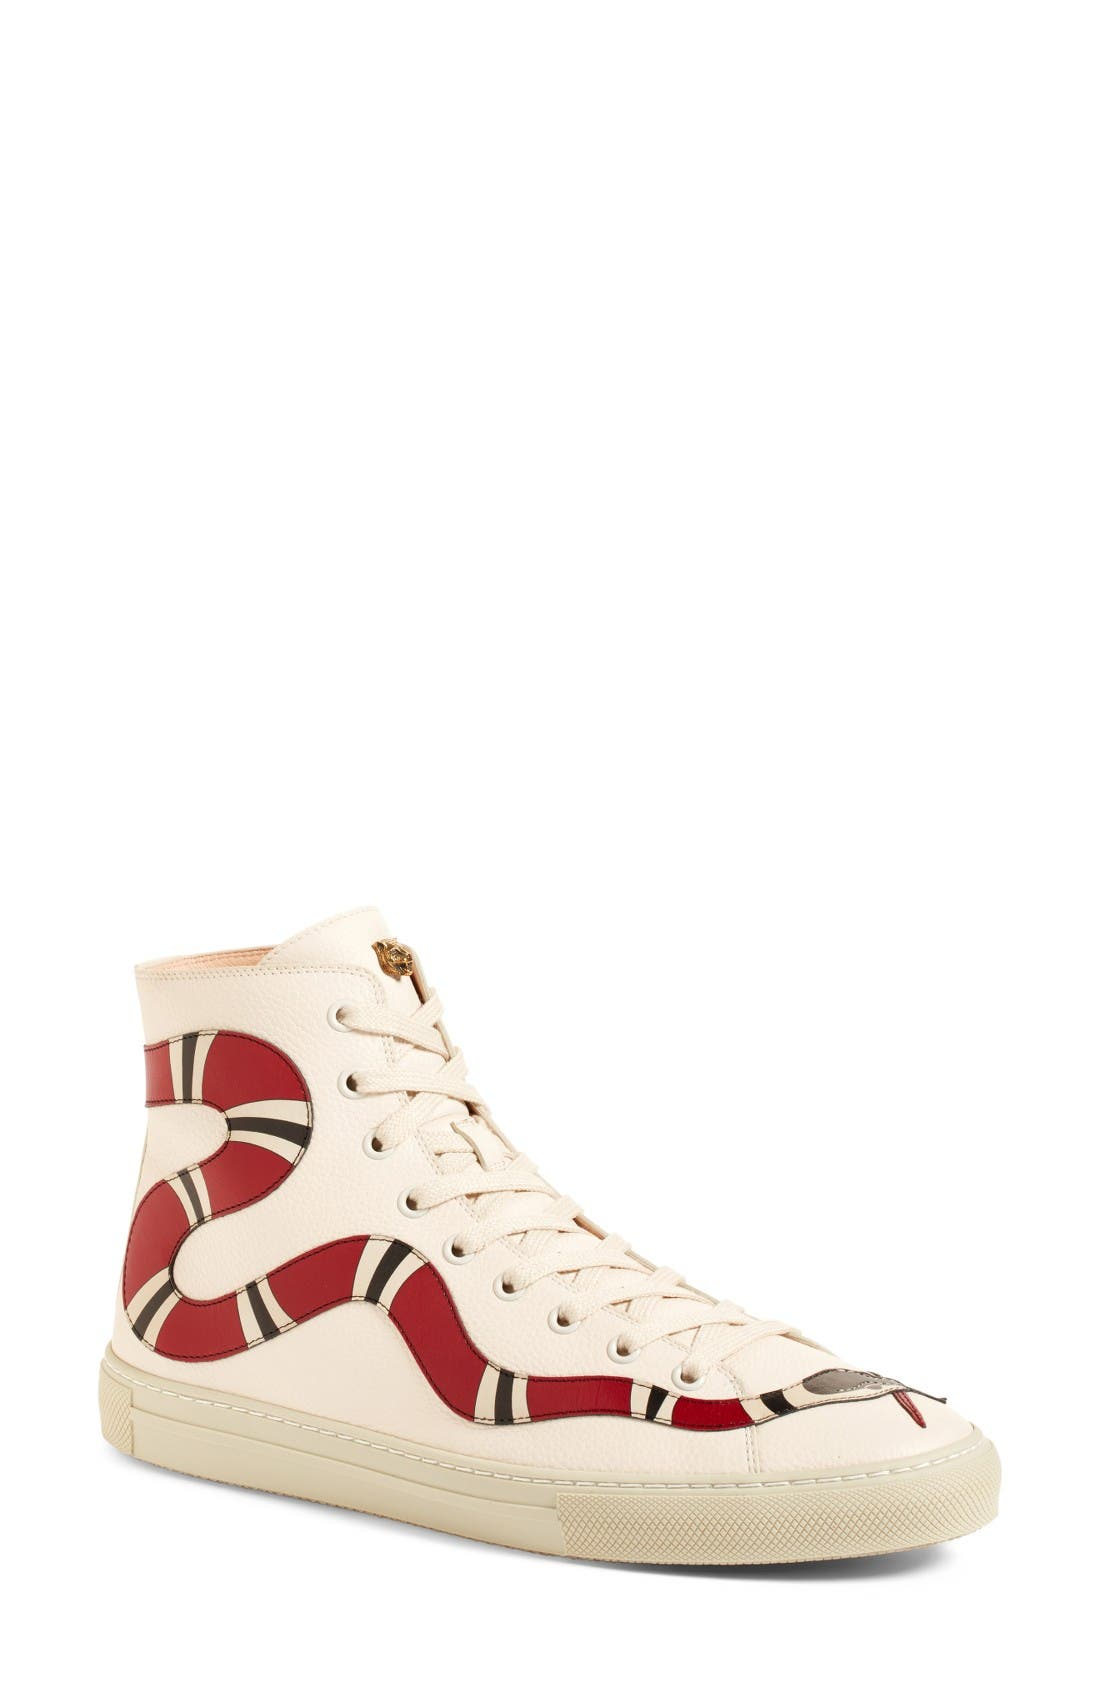 Gucci Major Snake High Top Sneaker (Women)